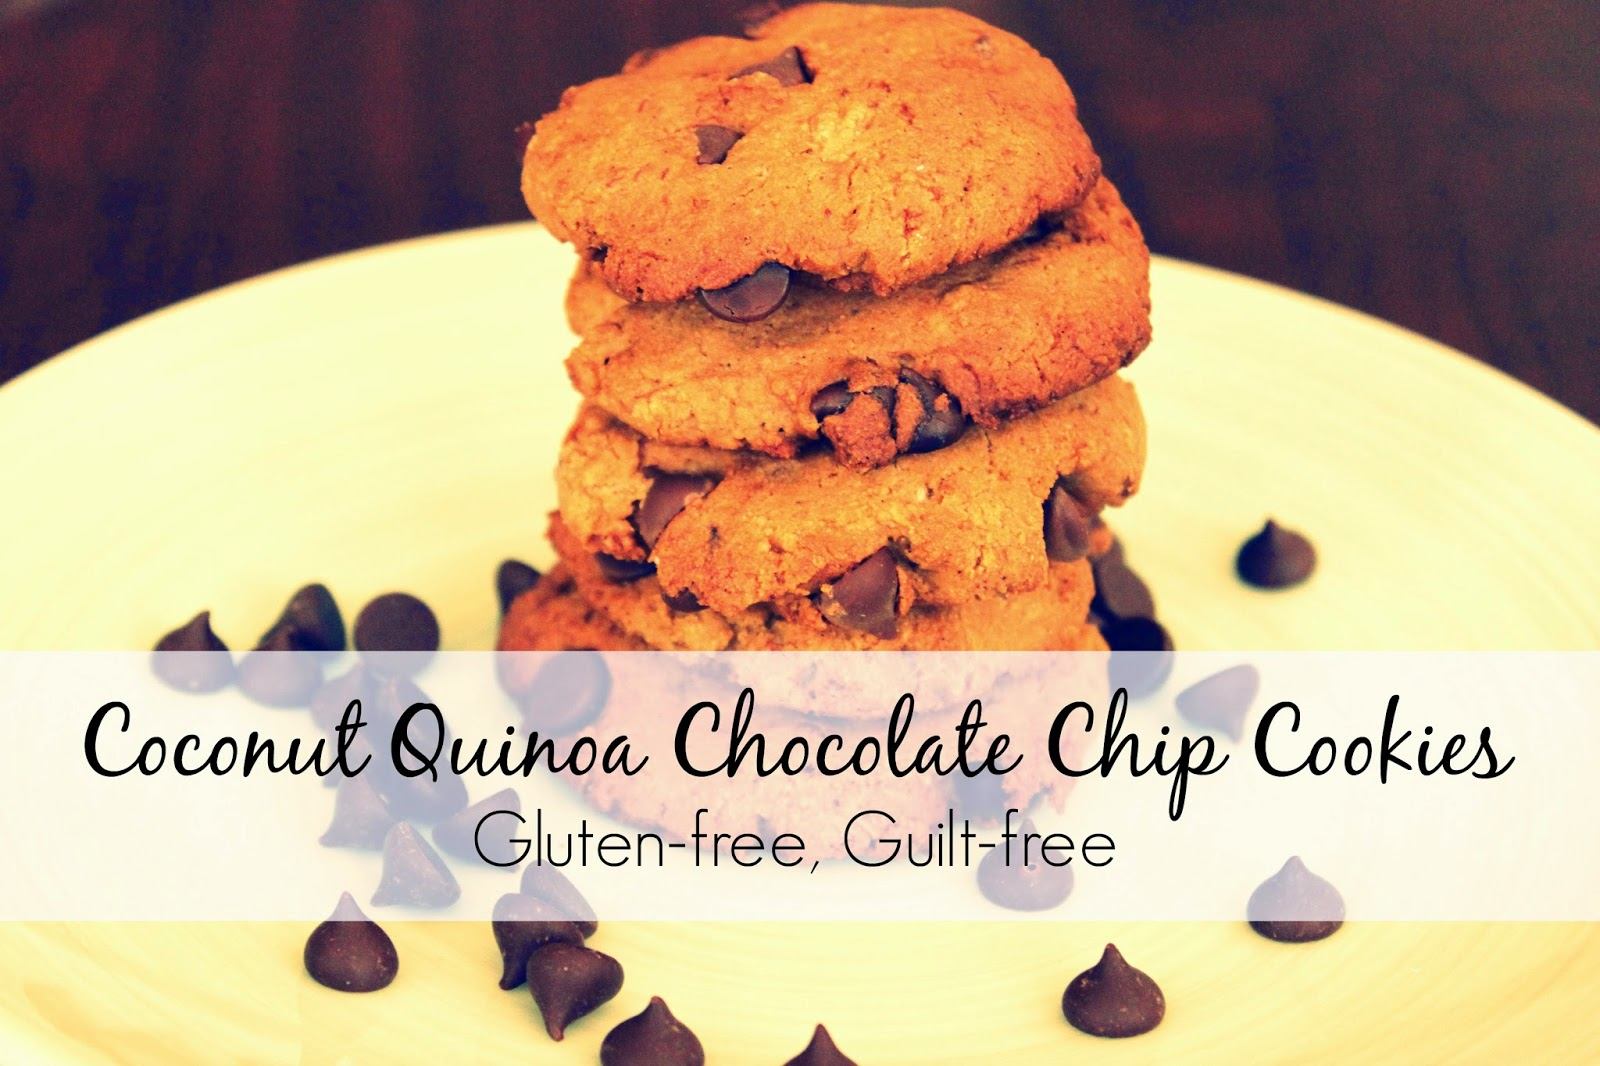 coconut quinoa chocolate chip cookies gluten-free